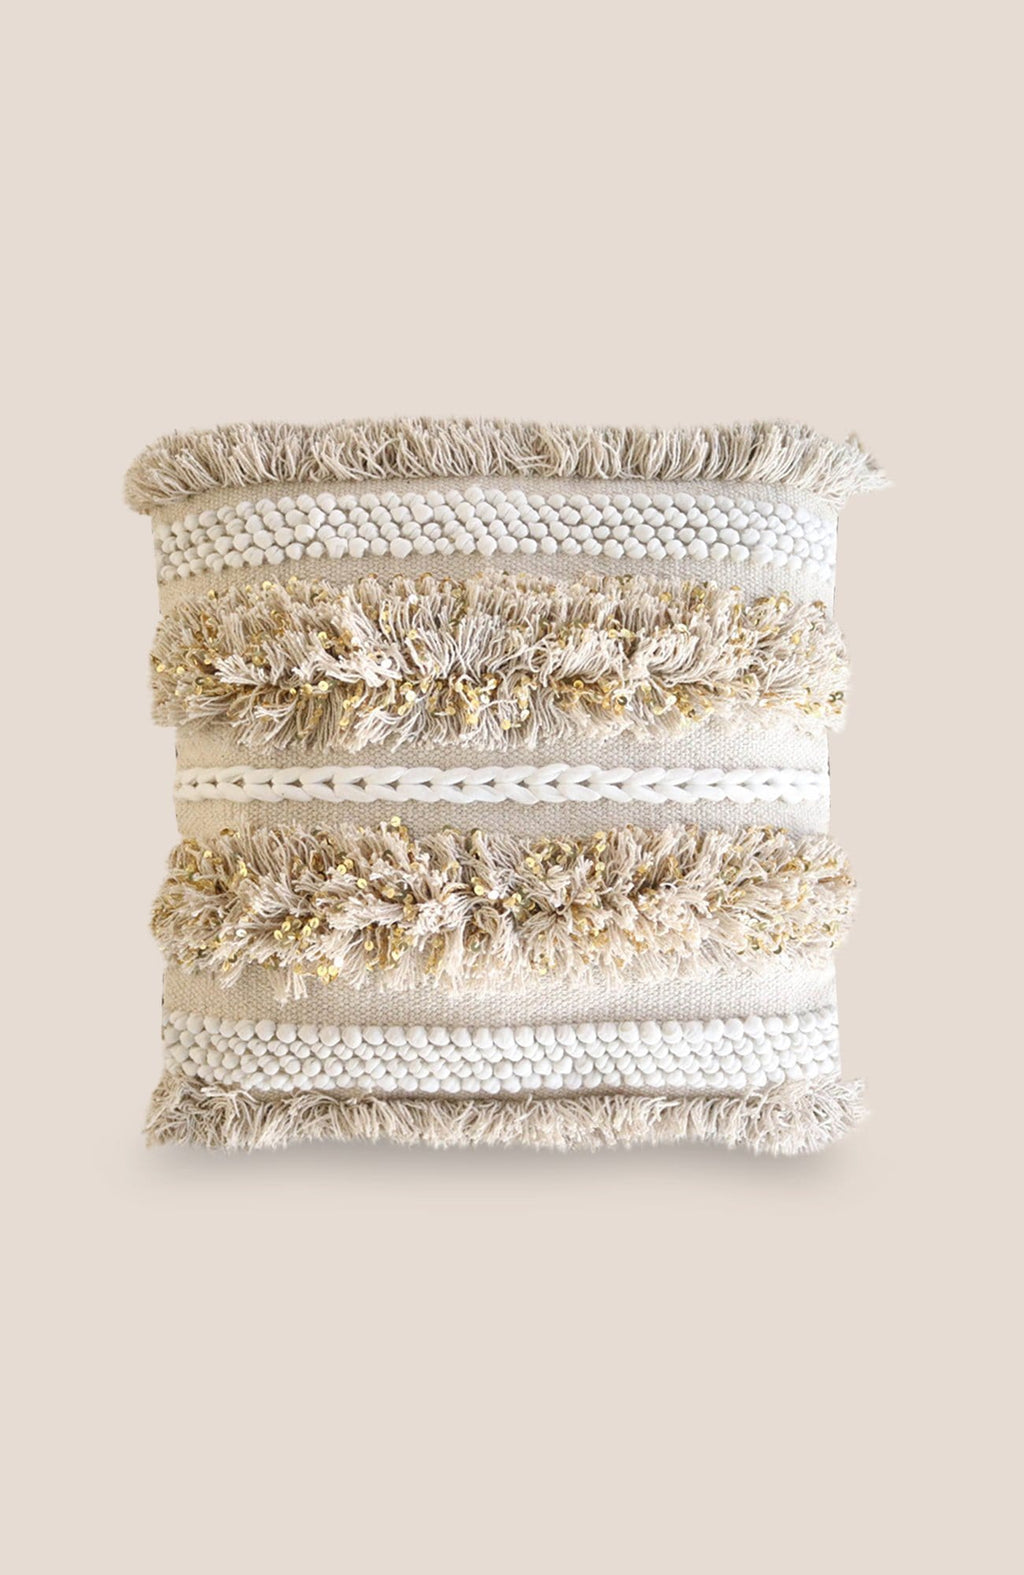 Pillow Cover Enva - Home Decor | Shop Baskets, Ceramics, Pillows, Rugs & Wall Hangs online